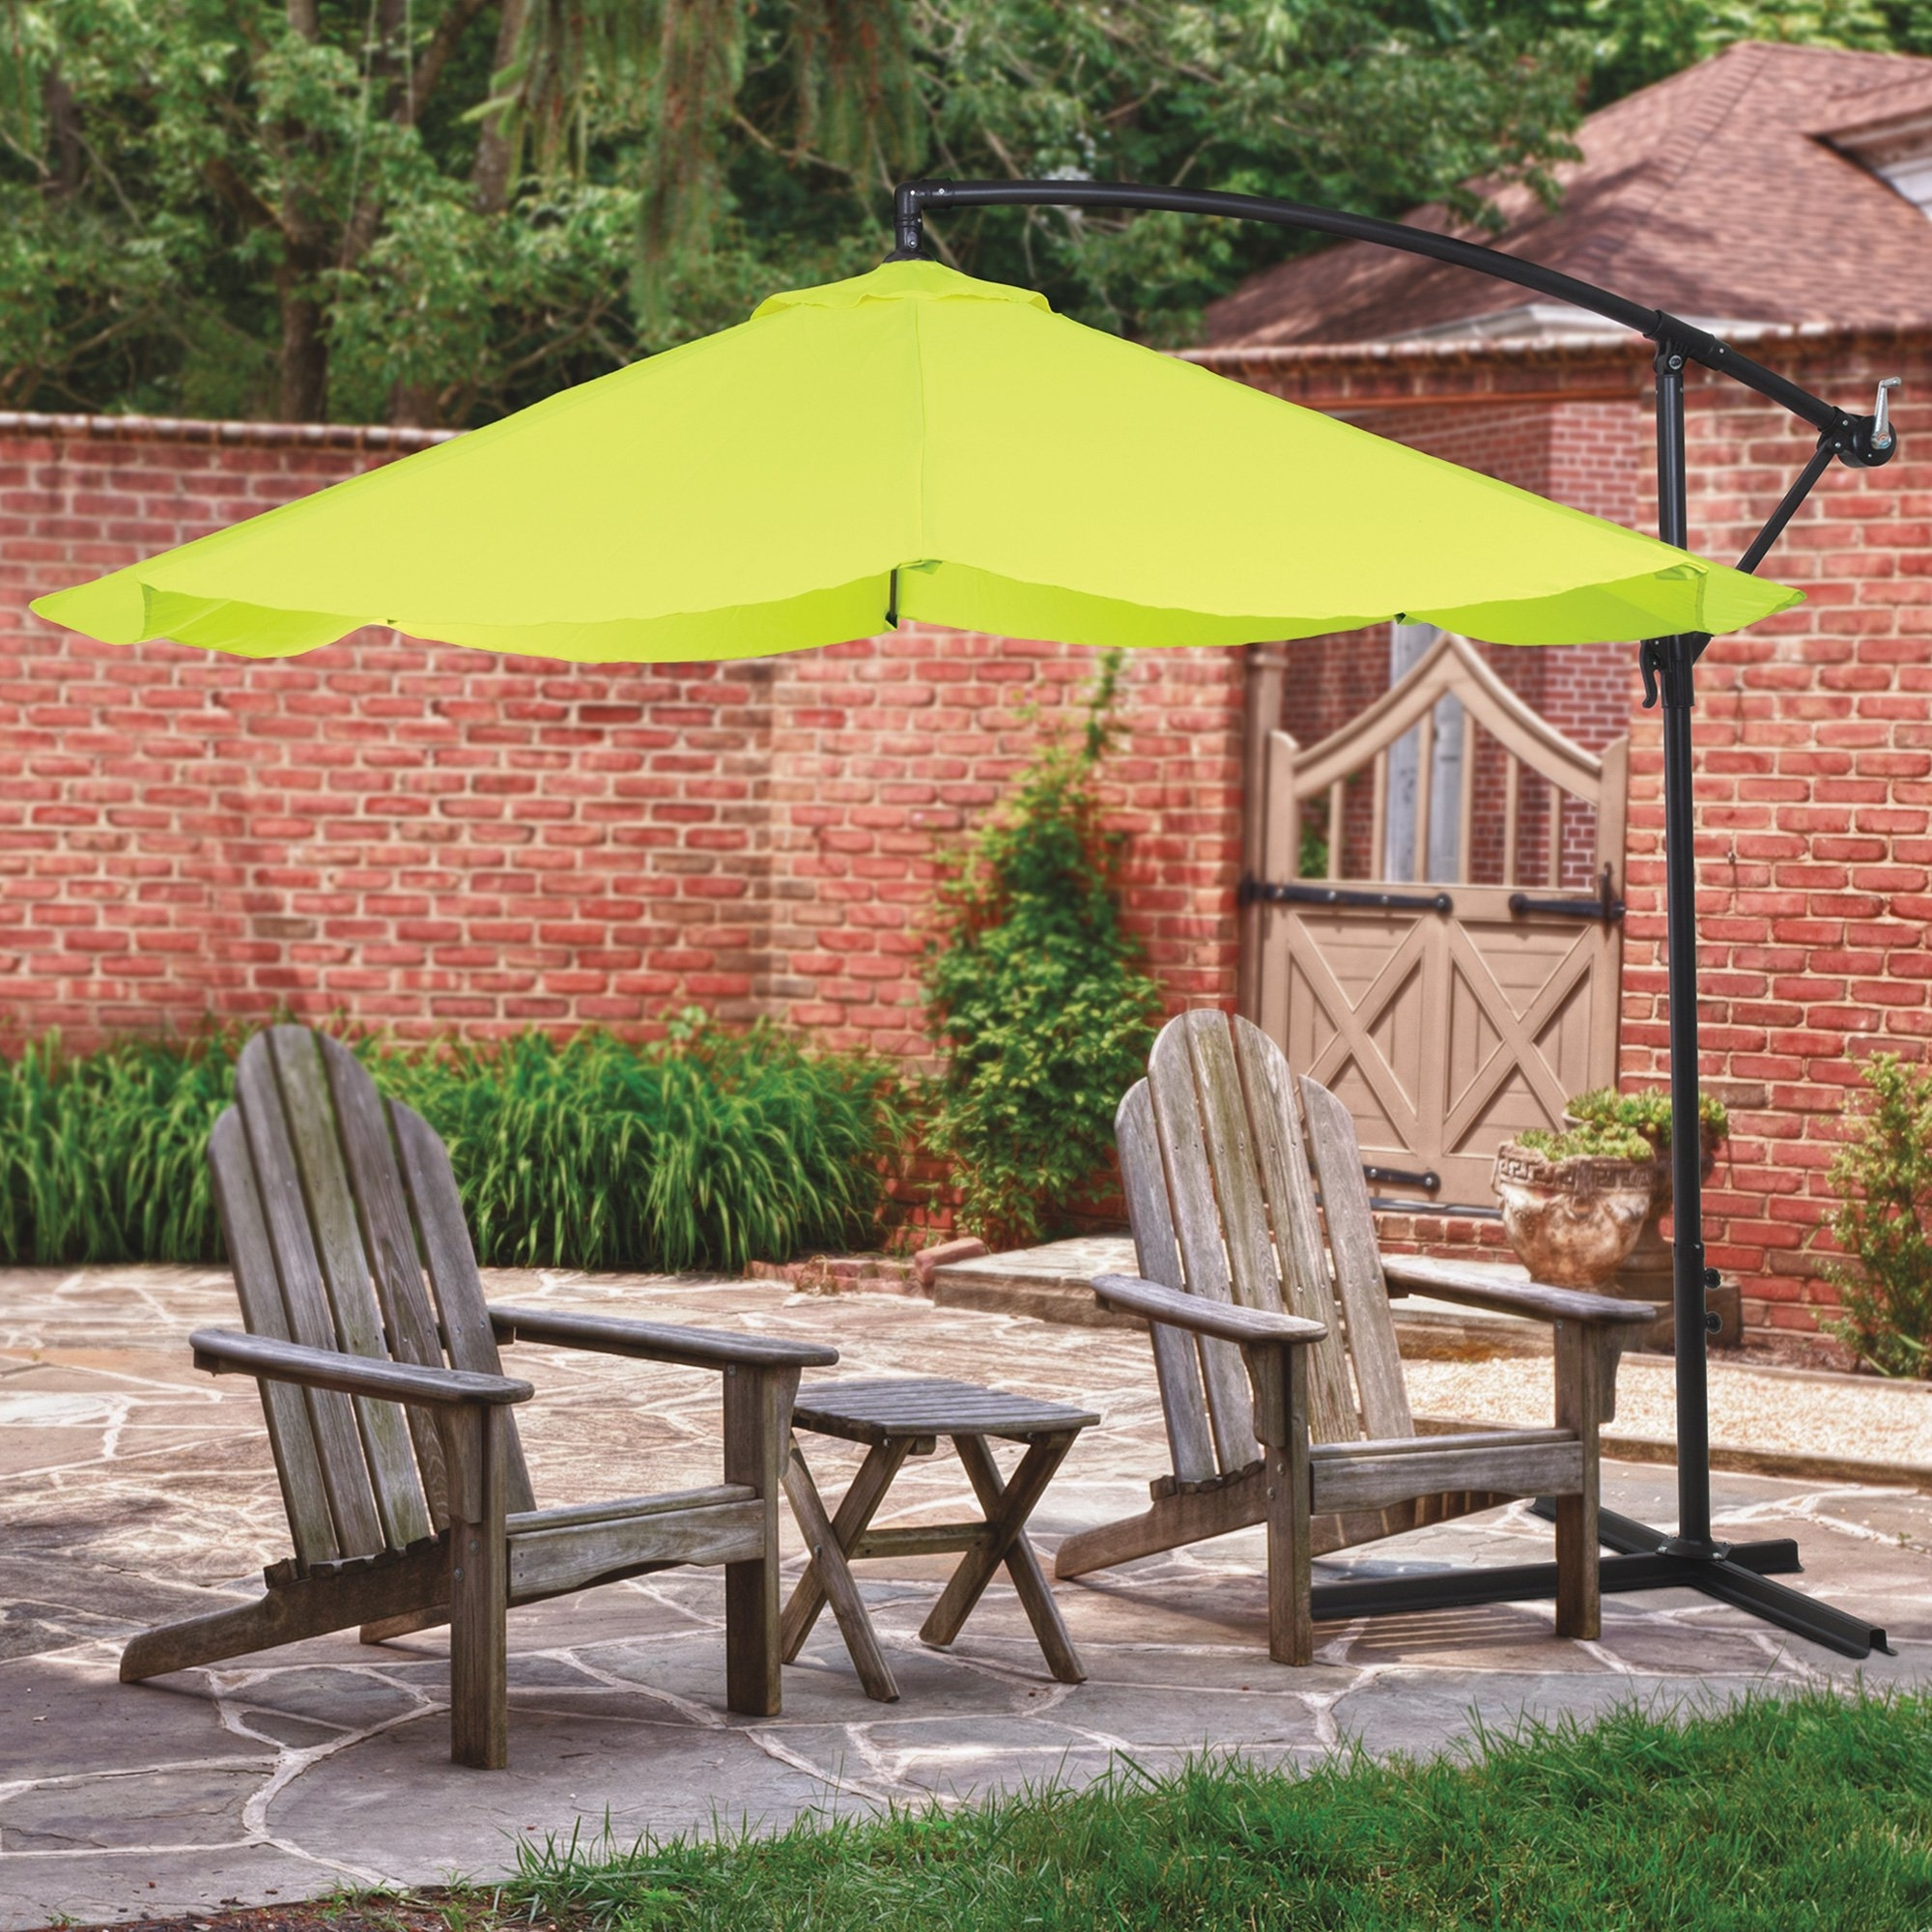 Deluxe Patio Umbrellas Within Well Known 10Ft. Adjustable Offset Hanging Patio Umbrella — Lime Green (Gallery 20 of 20)